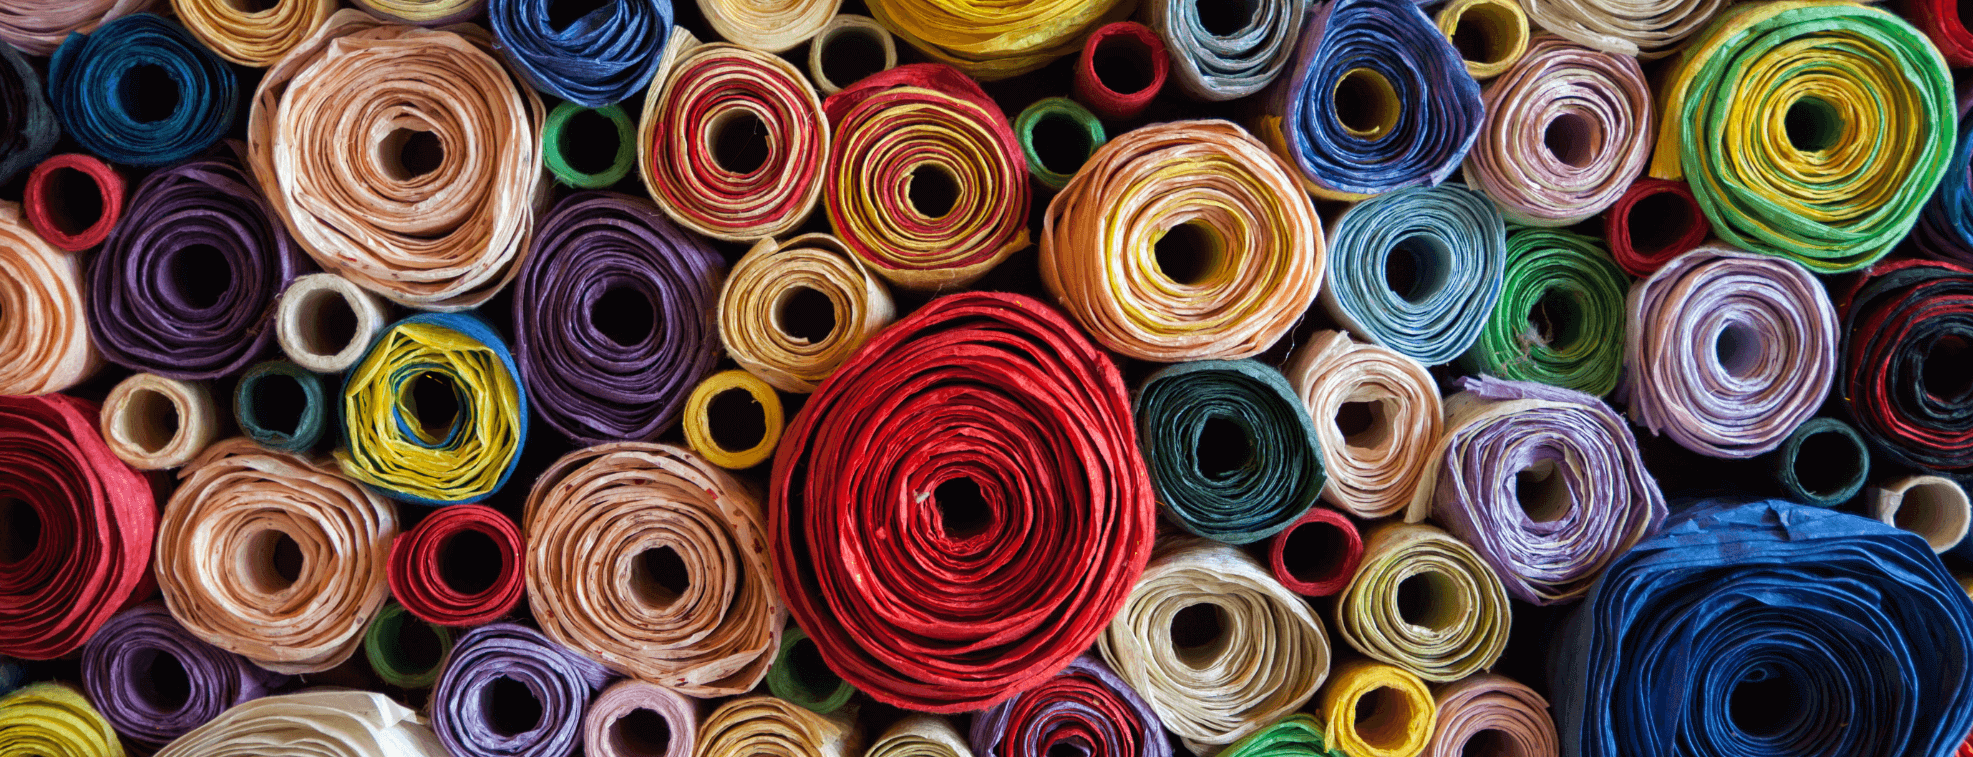 Carefully organized colorful rolls of textile